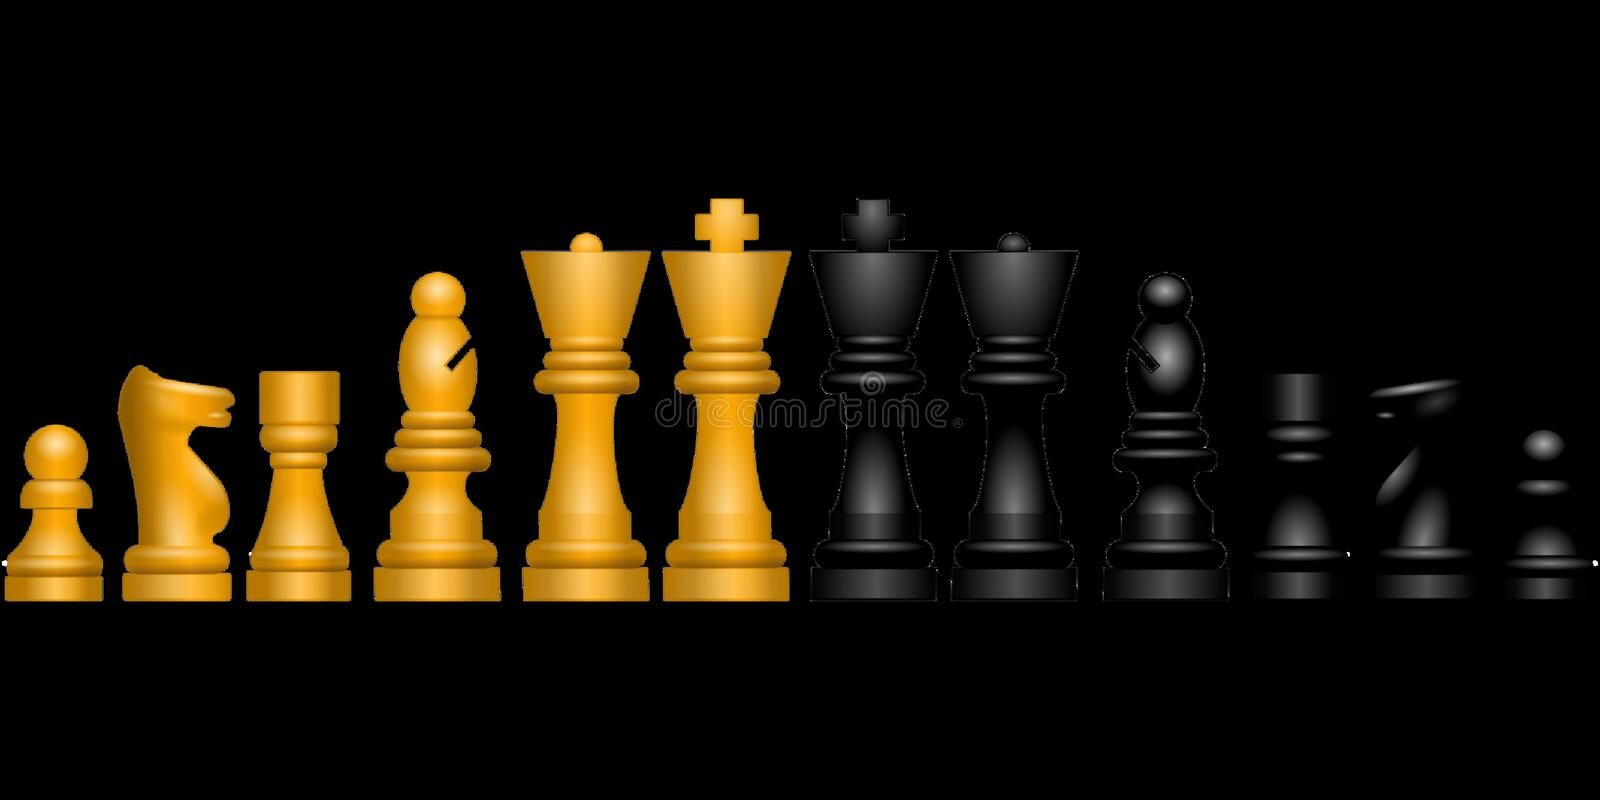 Board Game, Chess, Chessboard, Games royalty free stock images